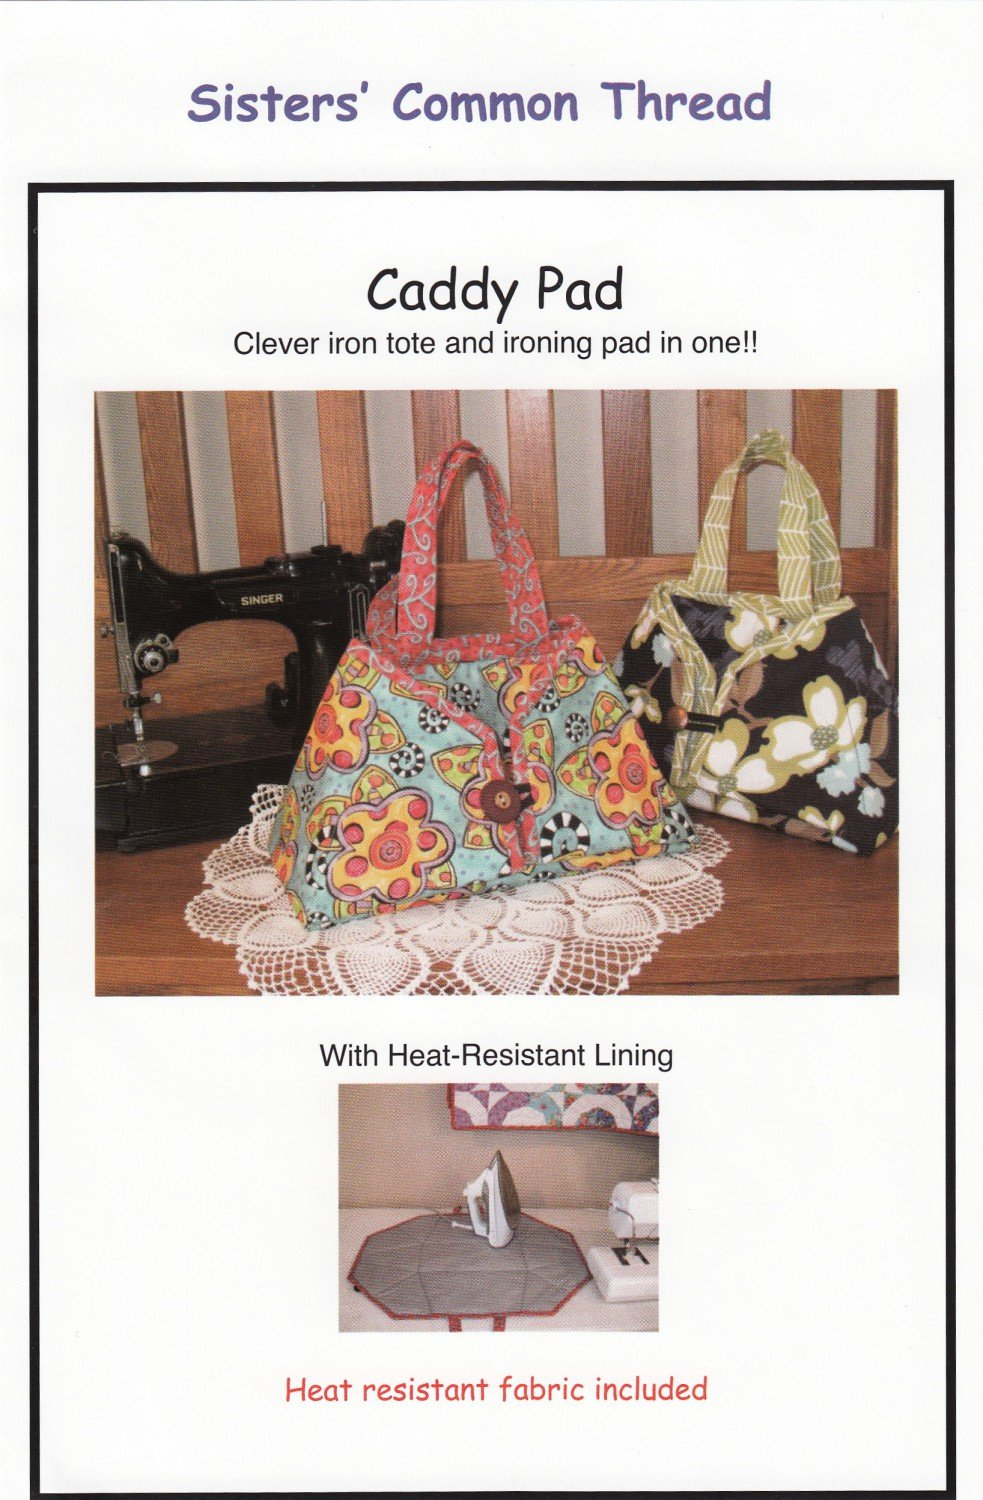 Caddy Pad by Sisters Common Thread